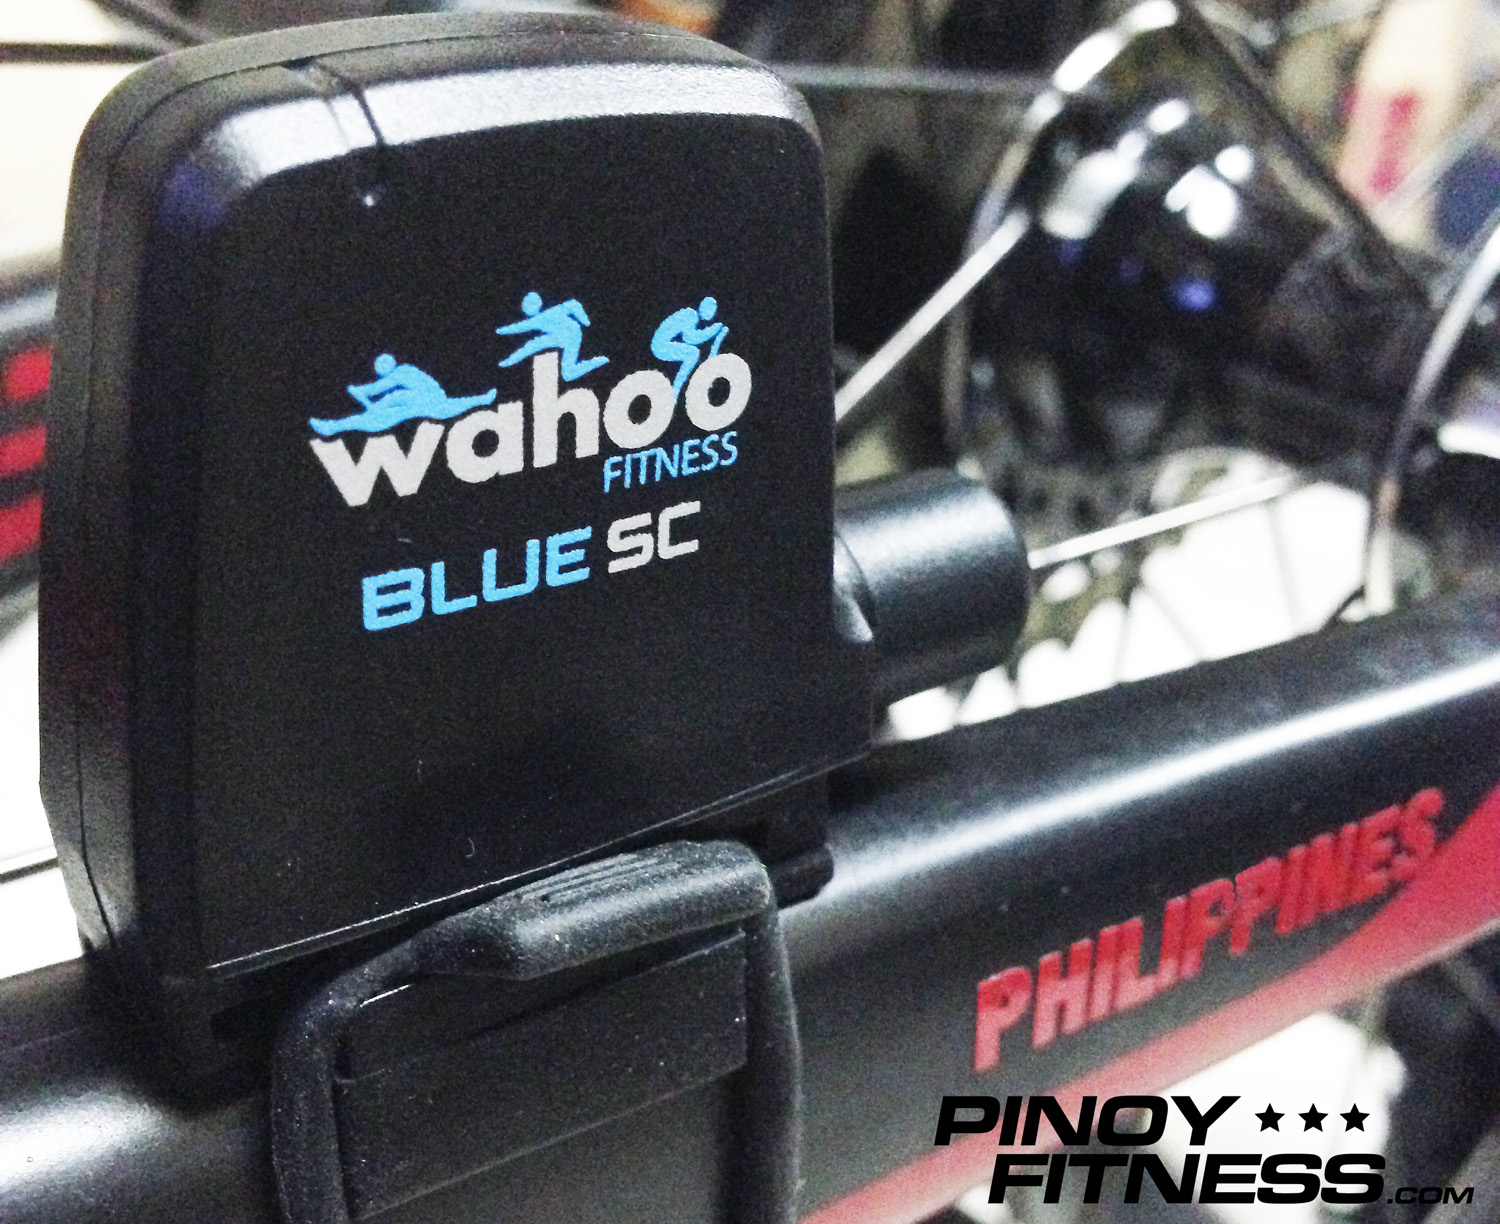 Wahoo Fitness Blue Sc Review Philippines Pinoy Spidometer Cateye Strada Cadence Speed And Sensor